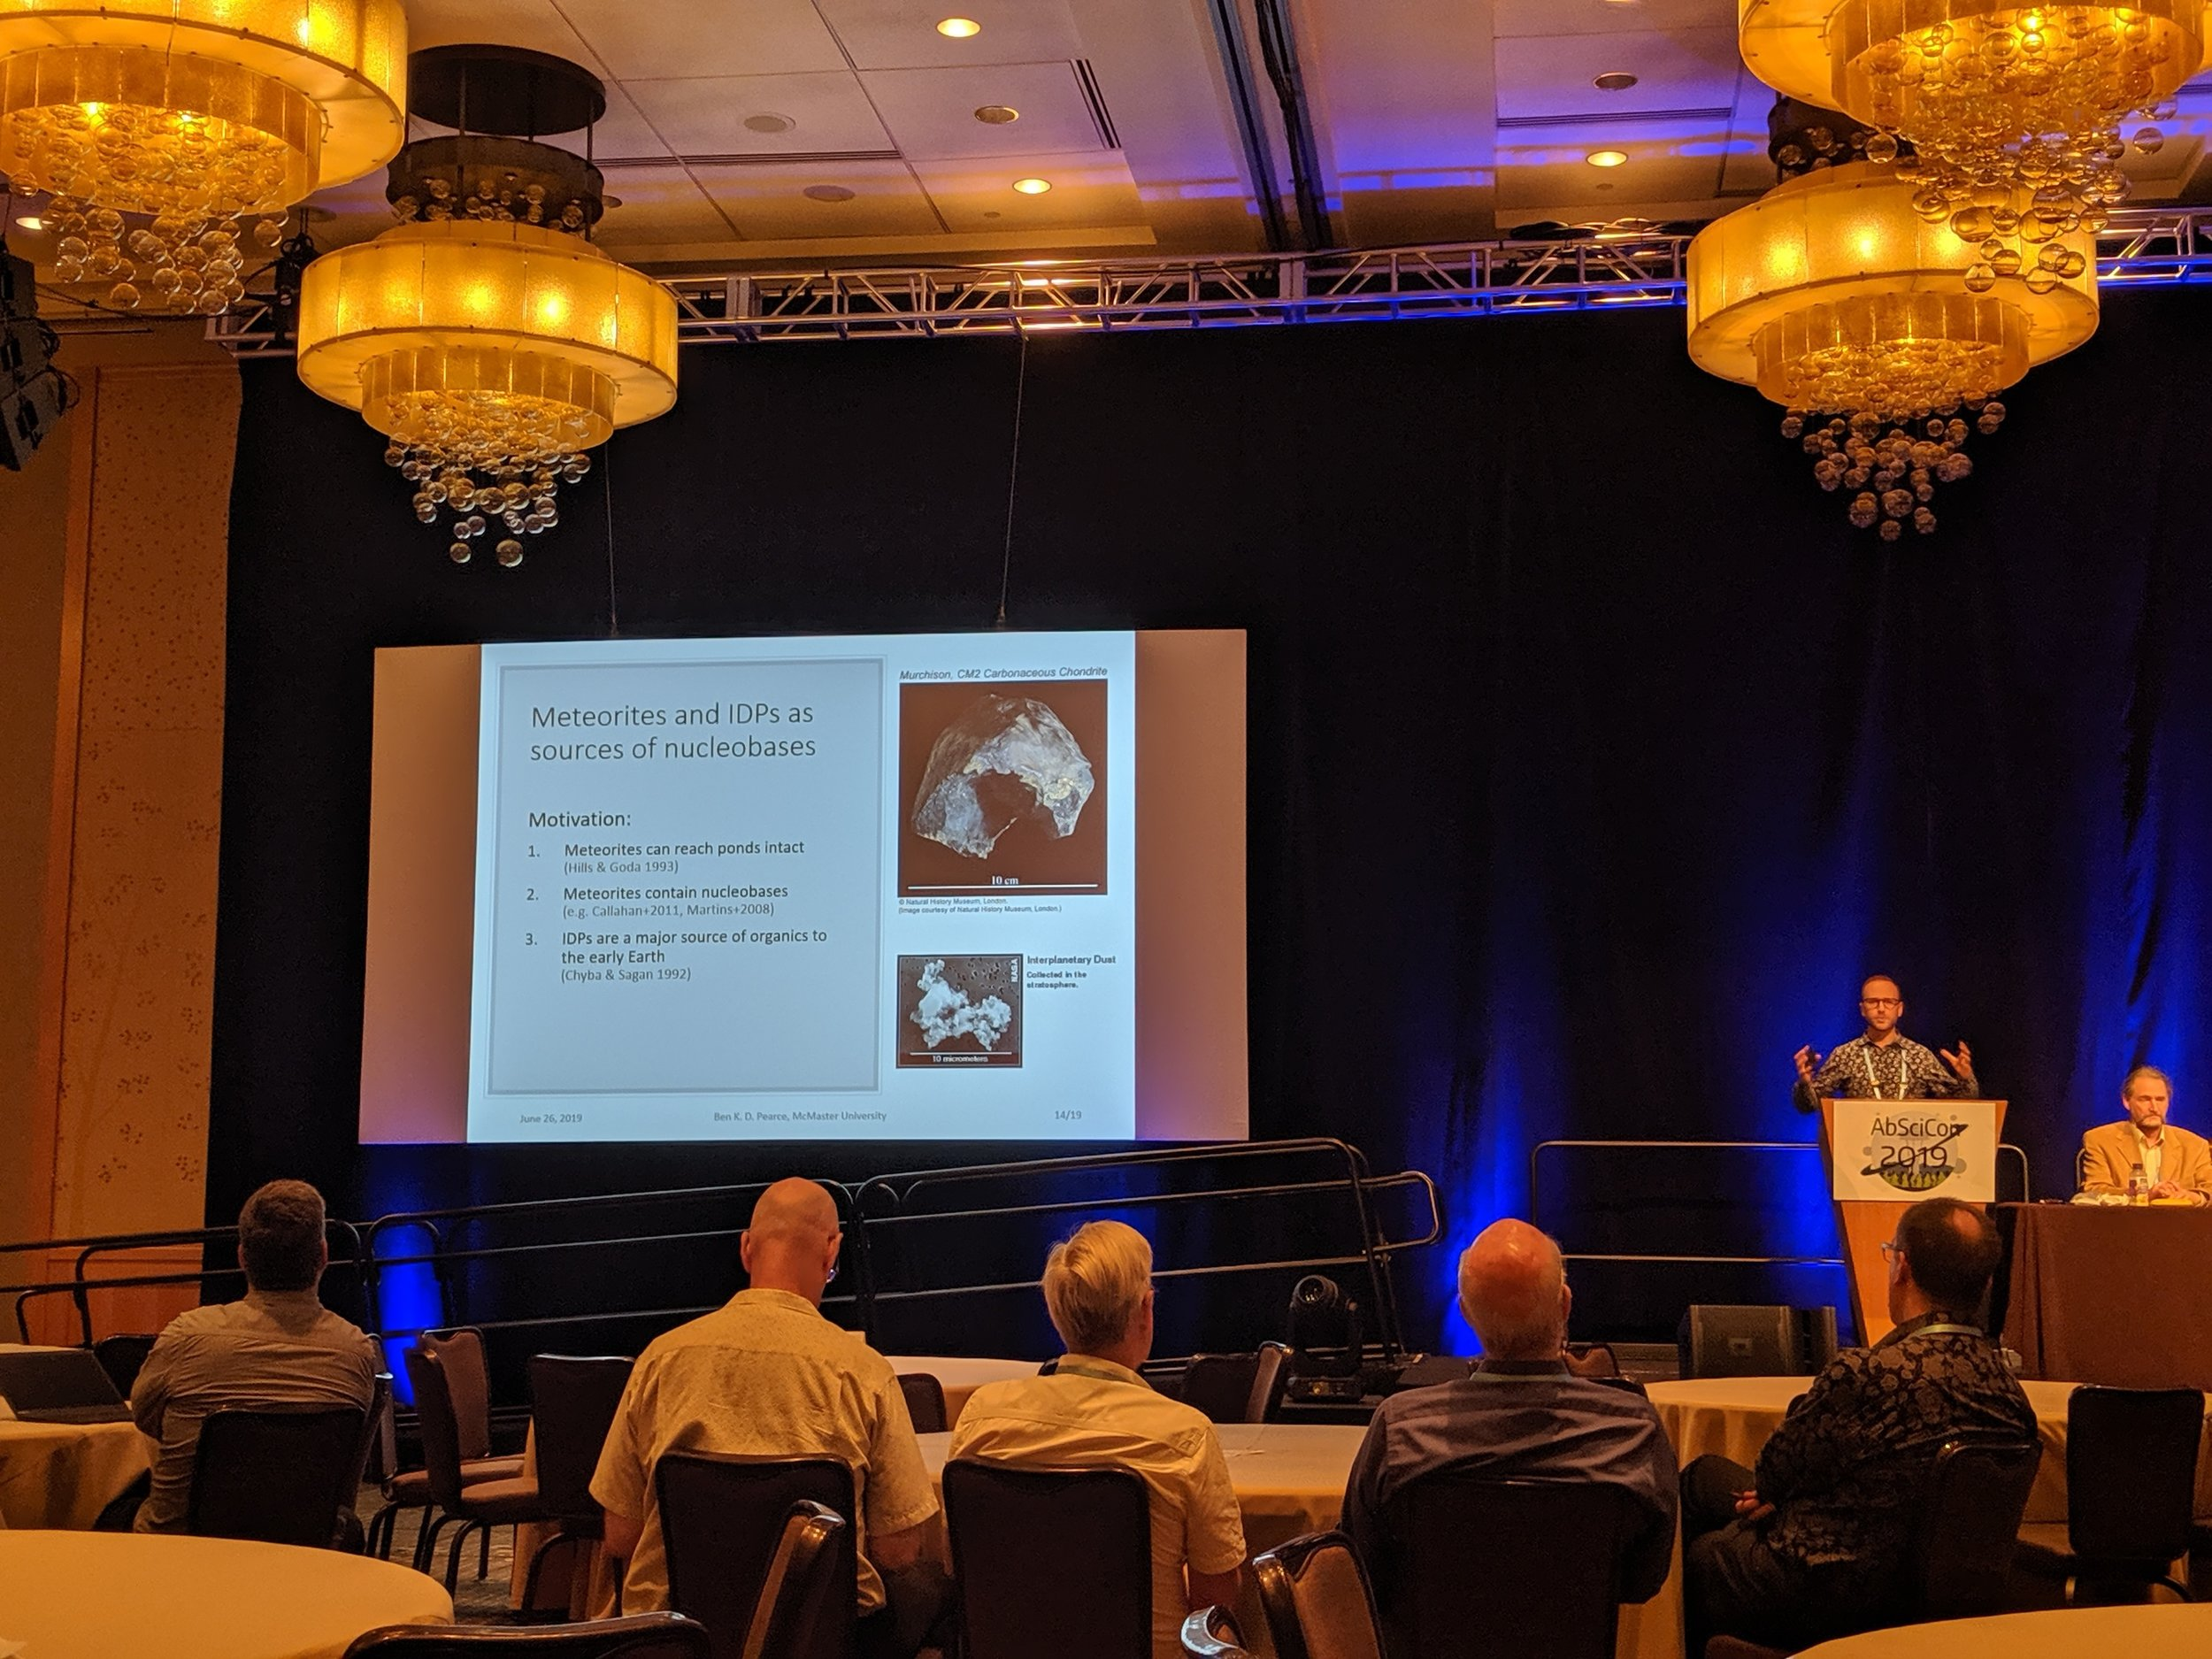 Astrobiology Science Conference (AbSciCon) 2019 : Ben K. D. Pearce giving an invited talk on meteorites and interplanetary dust particles as sources of nucleobases to warm little ponds on the early Earth. Bellevue, WA, June 26th, 2019.  Photo credit: Andrew Tupper.